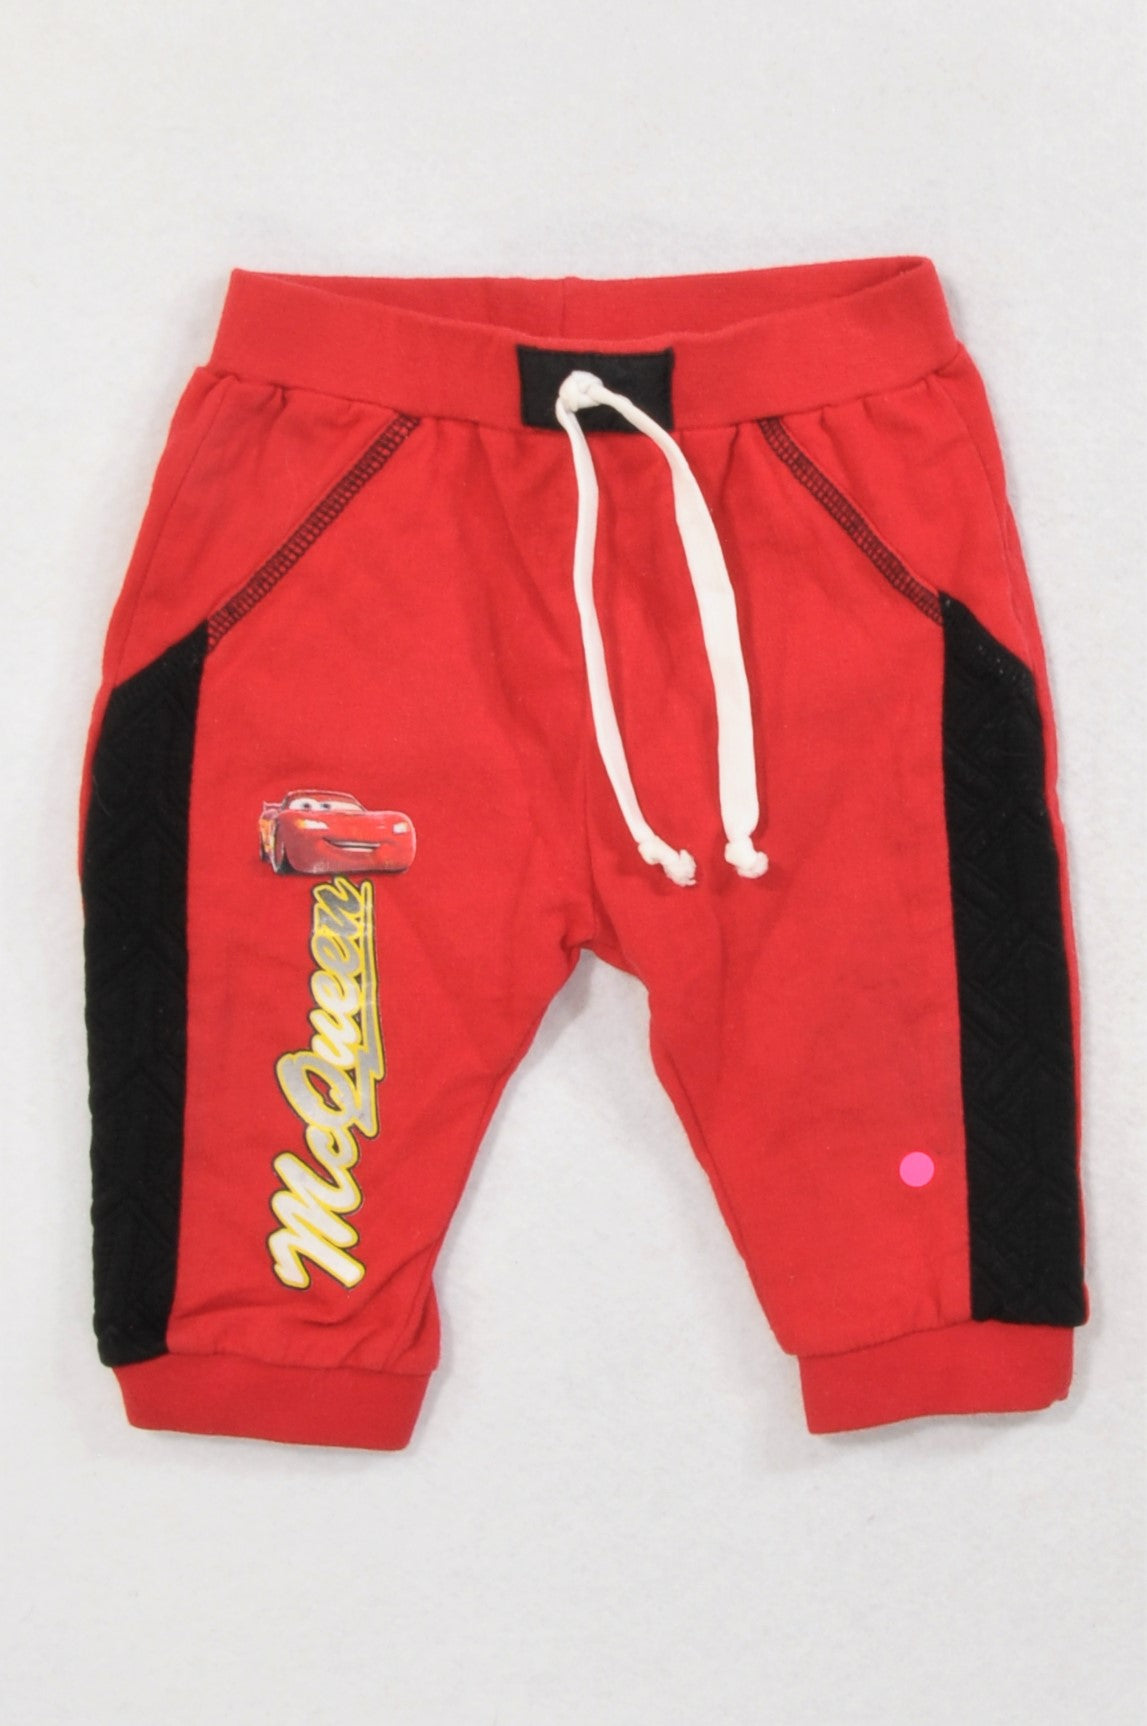 Edgars Red Cars Black Detail Track Pants Boys 6-9 months